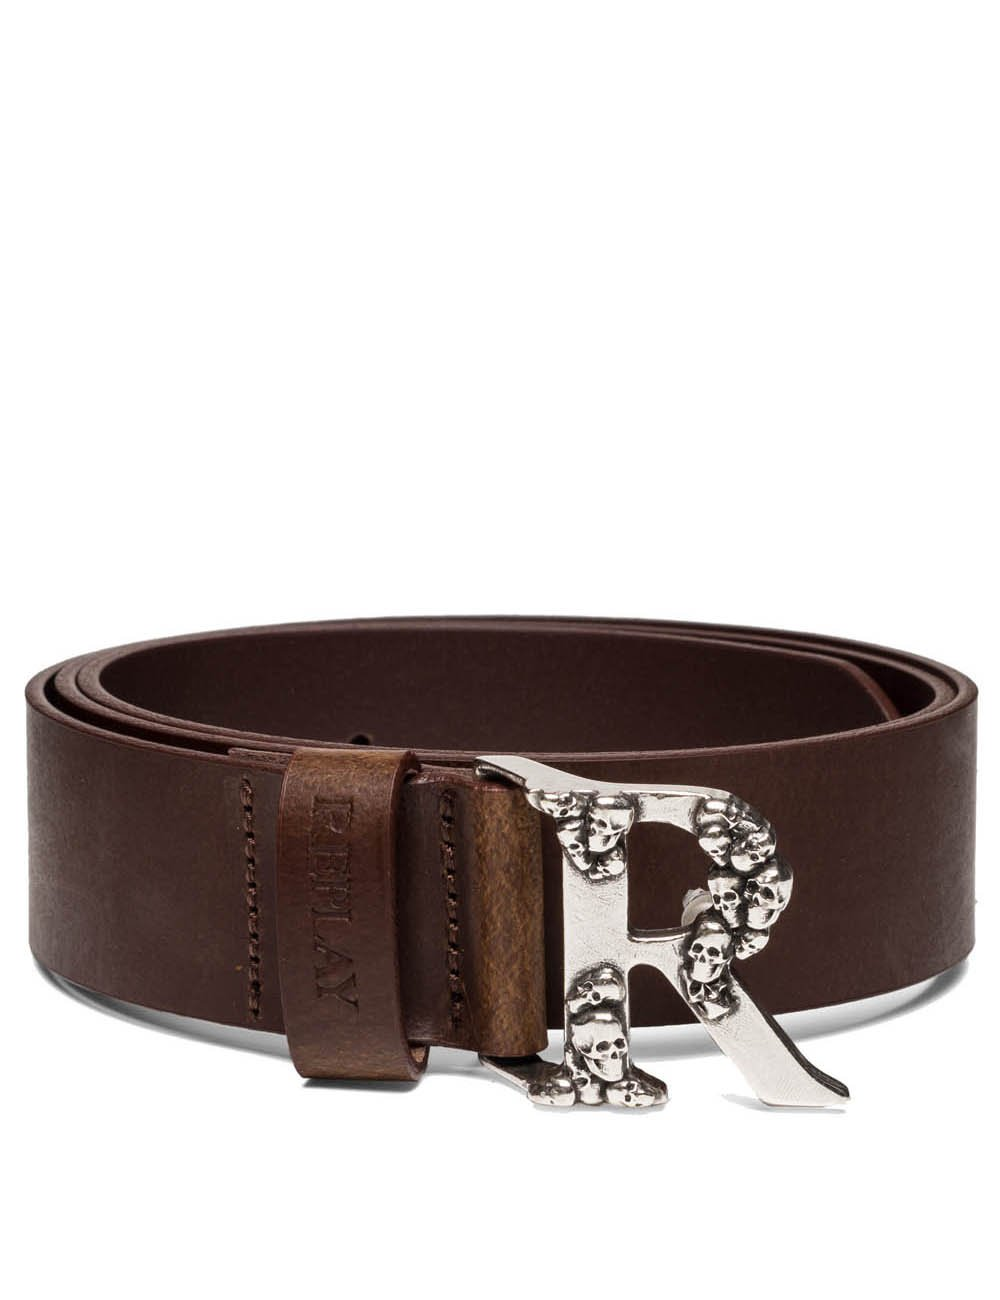 Replay Women's Women's Leather Brown Belt With Skulls in Size 100 Brown